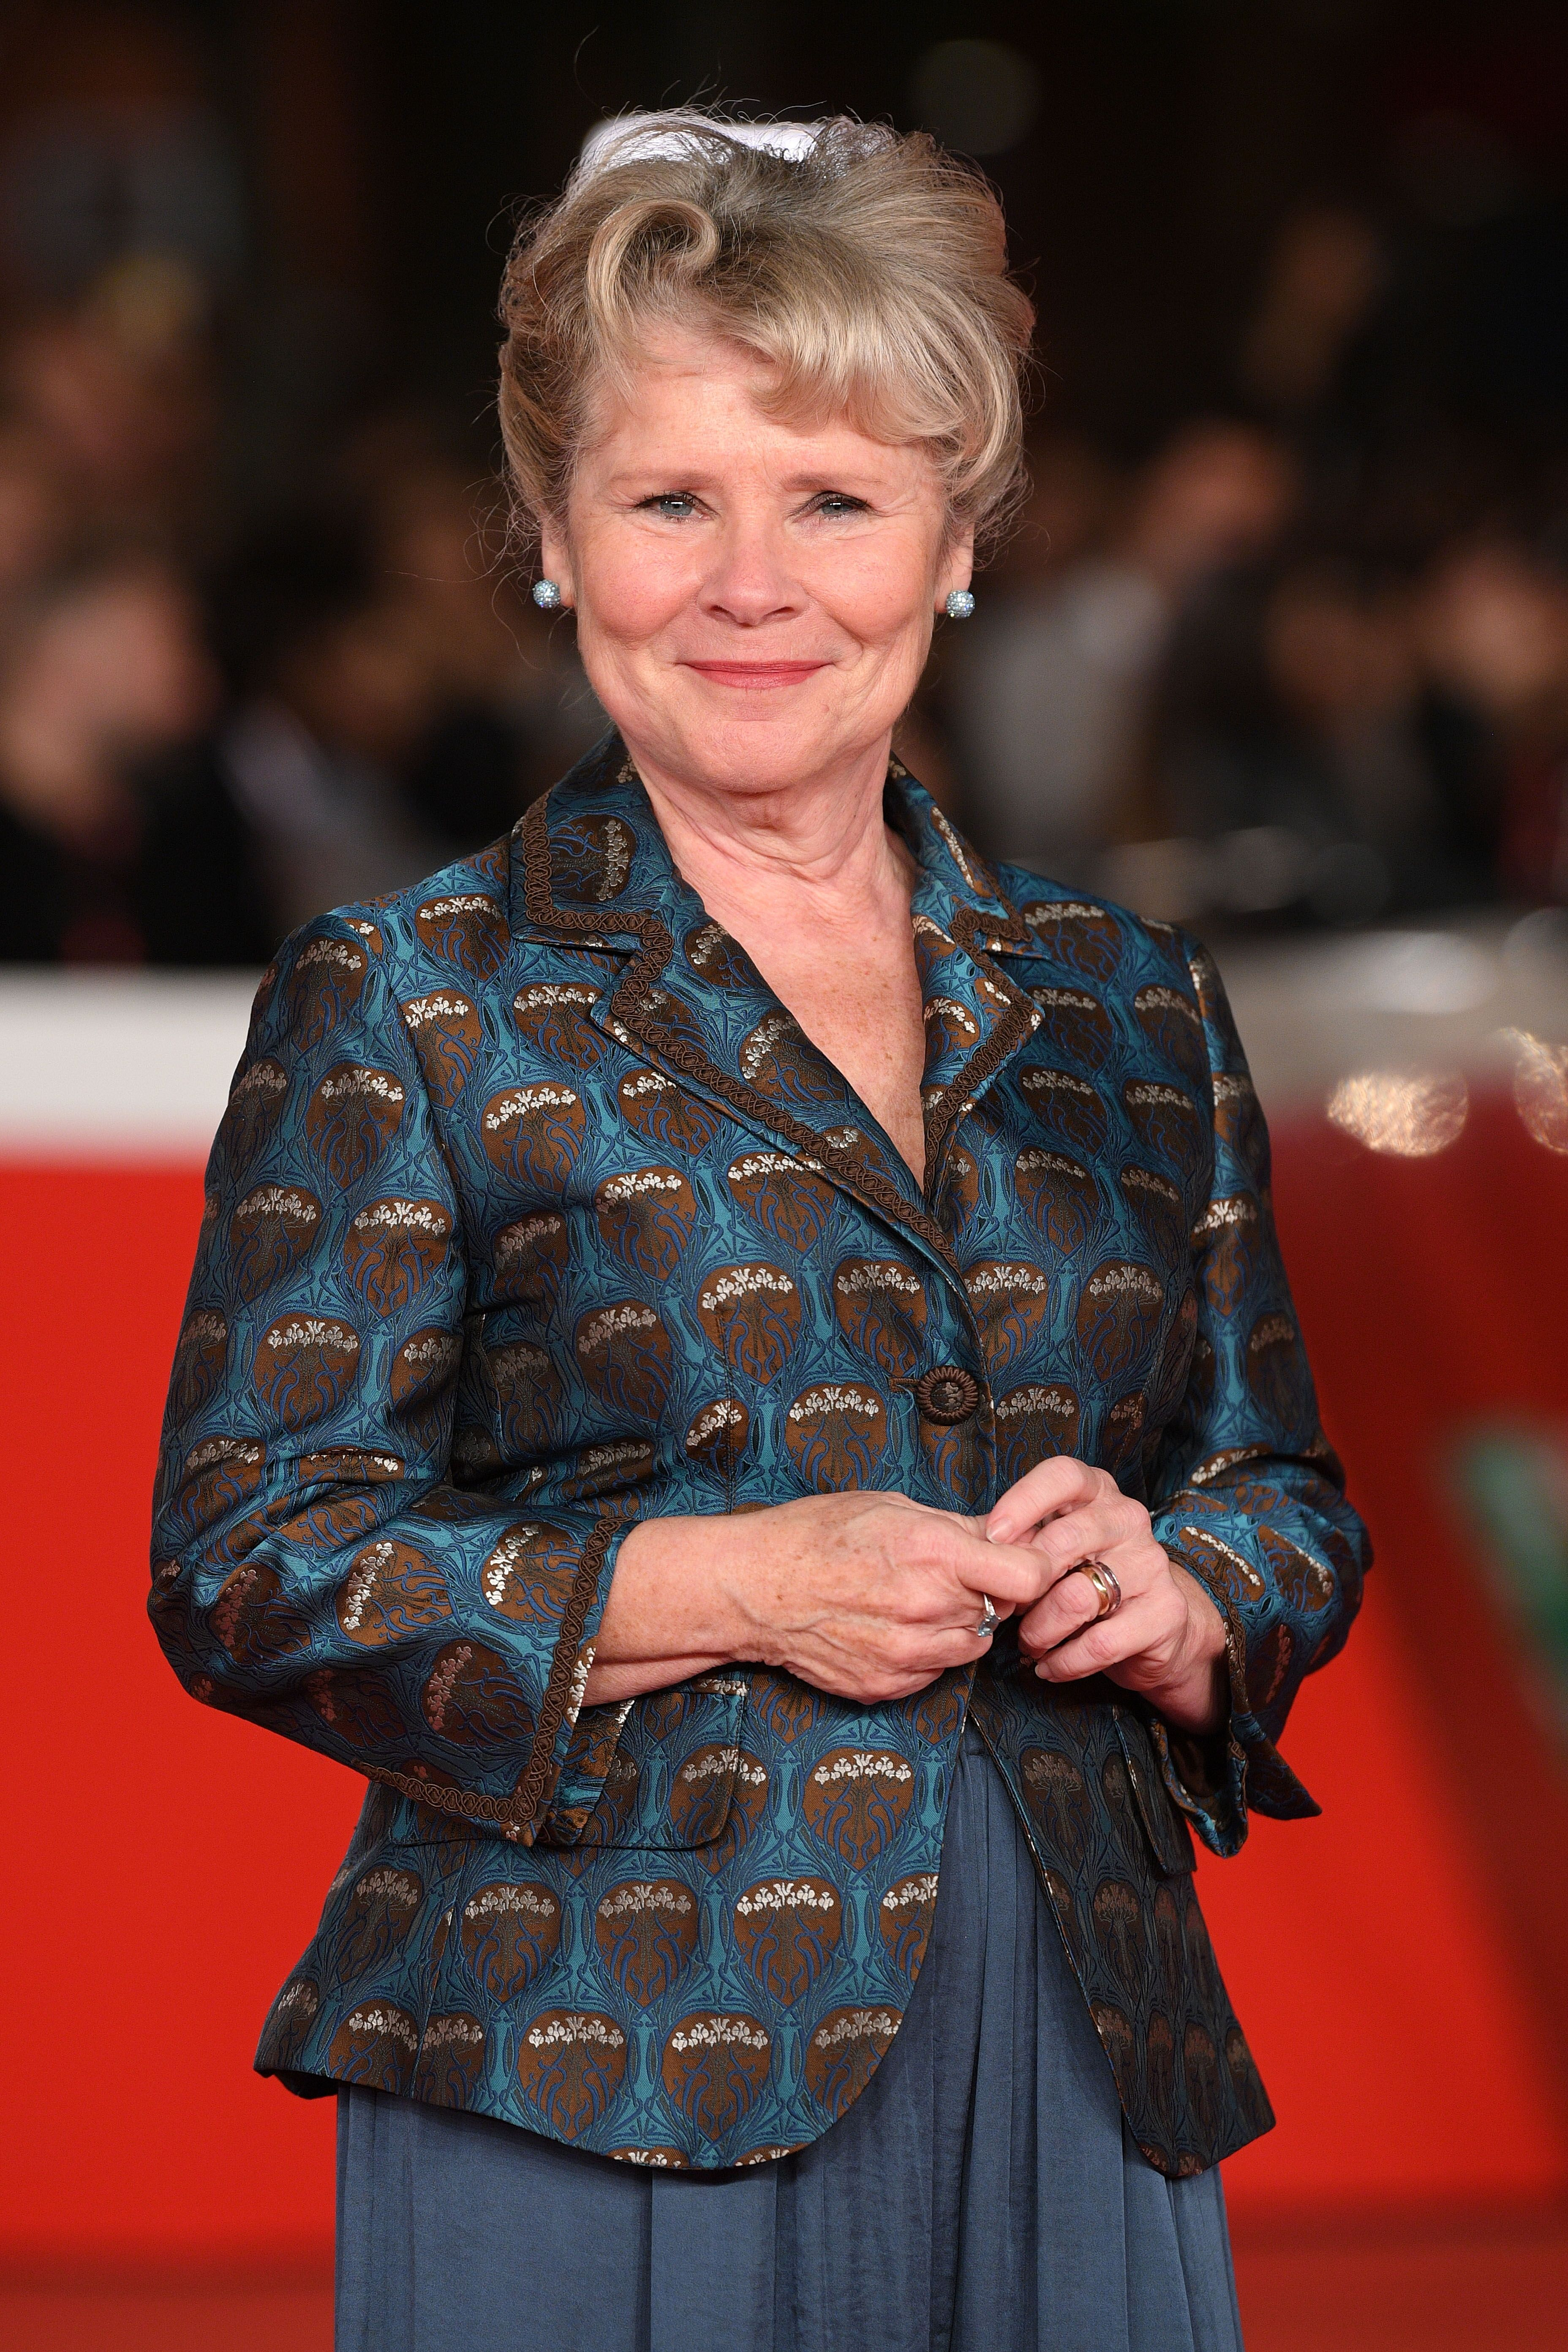 """Imelda Staunton attends the """"Downton Abbey"""" red carpet during the 14th Rome Film Festival. 